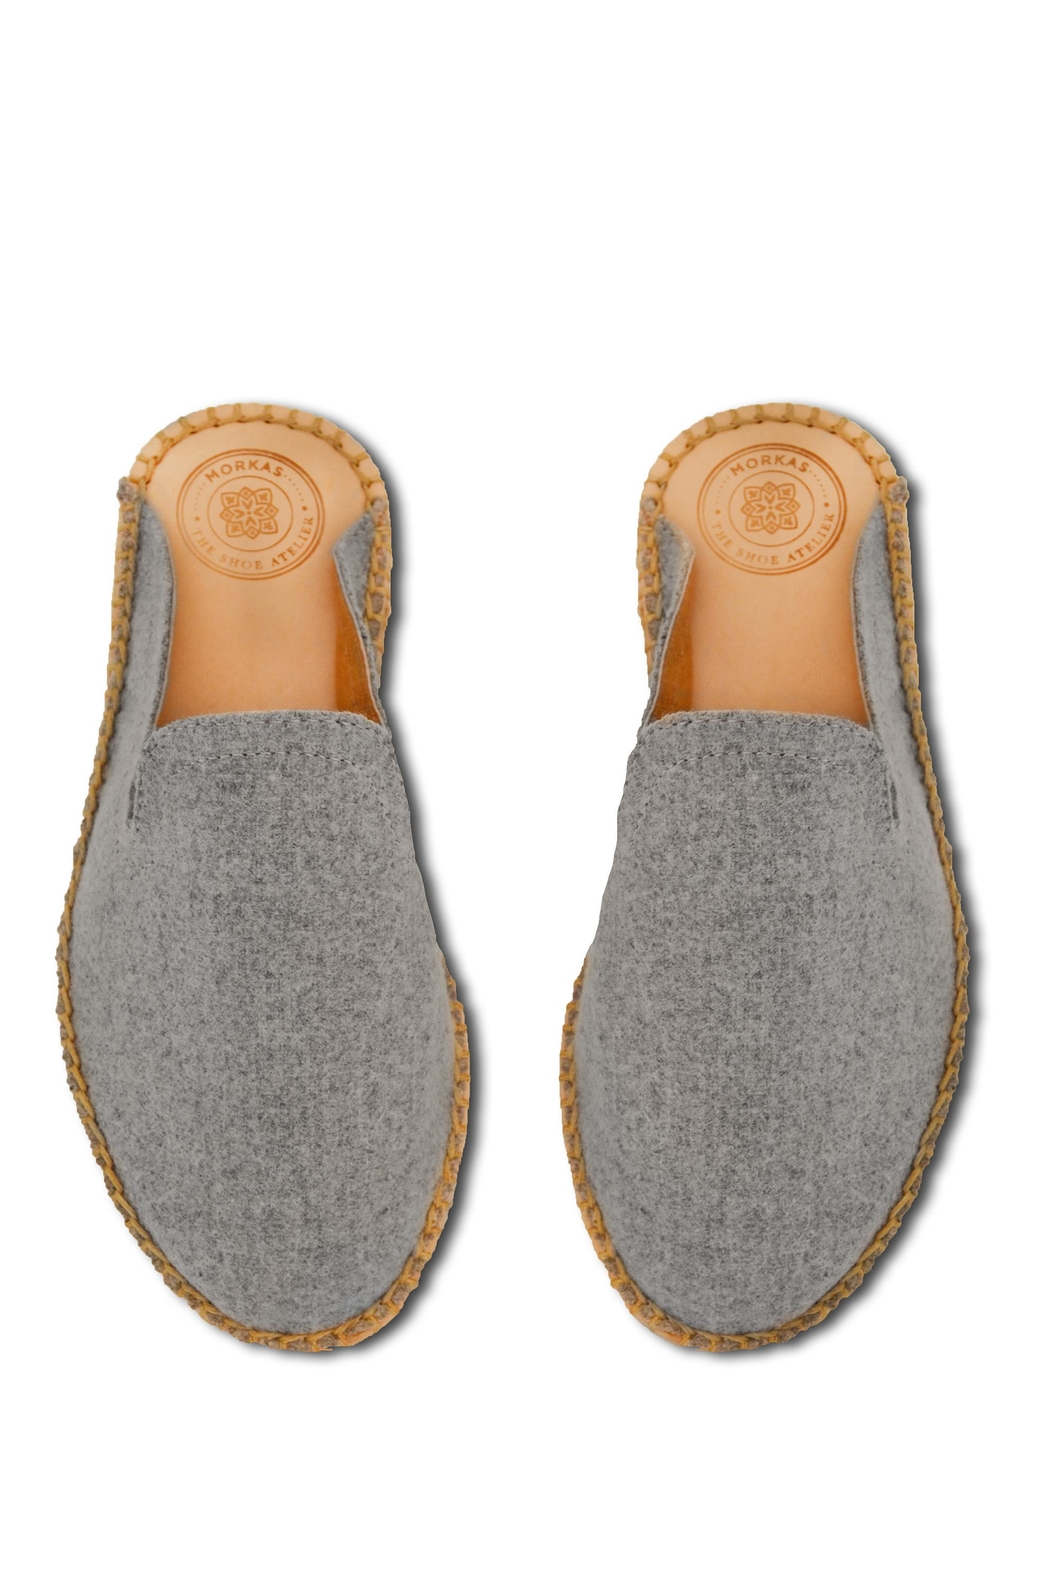 Morkas Shoes Hand-Knitted Mules - Front Full Image